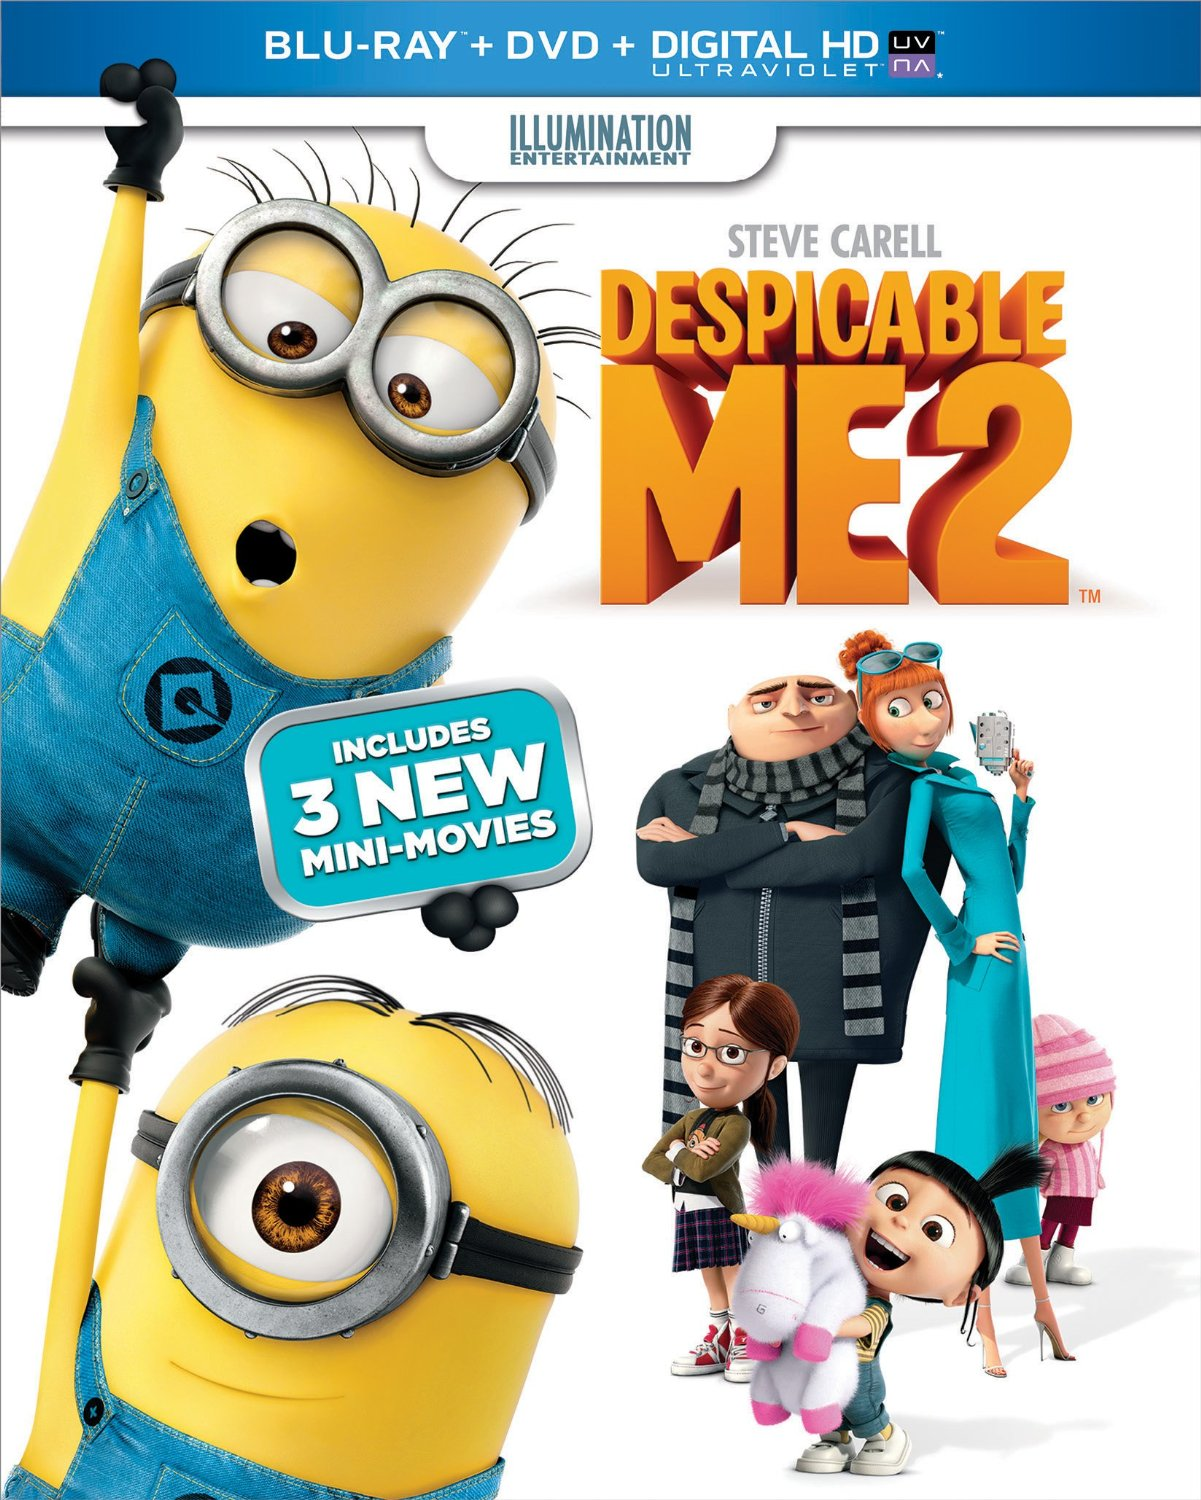 Despicable Me 2 will be released this Tuesday, December 10th. This is ...